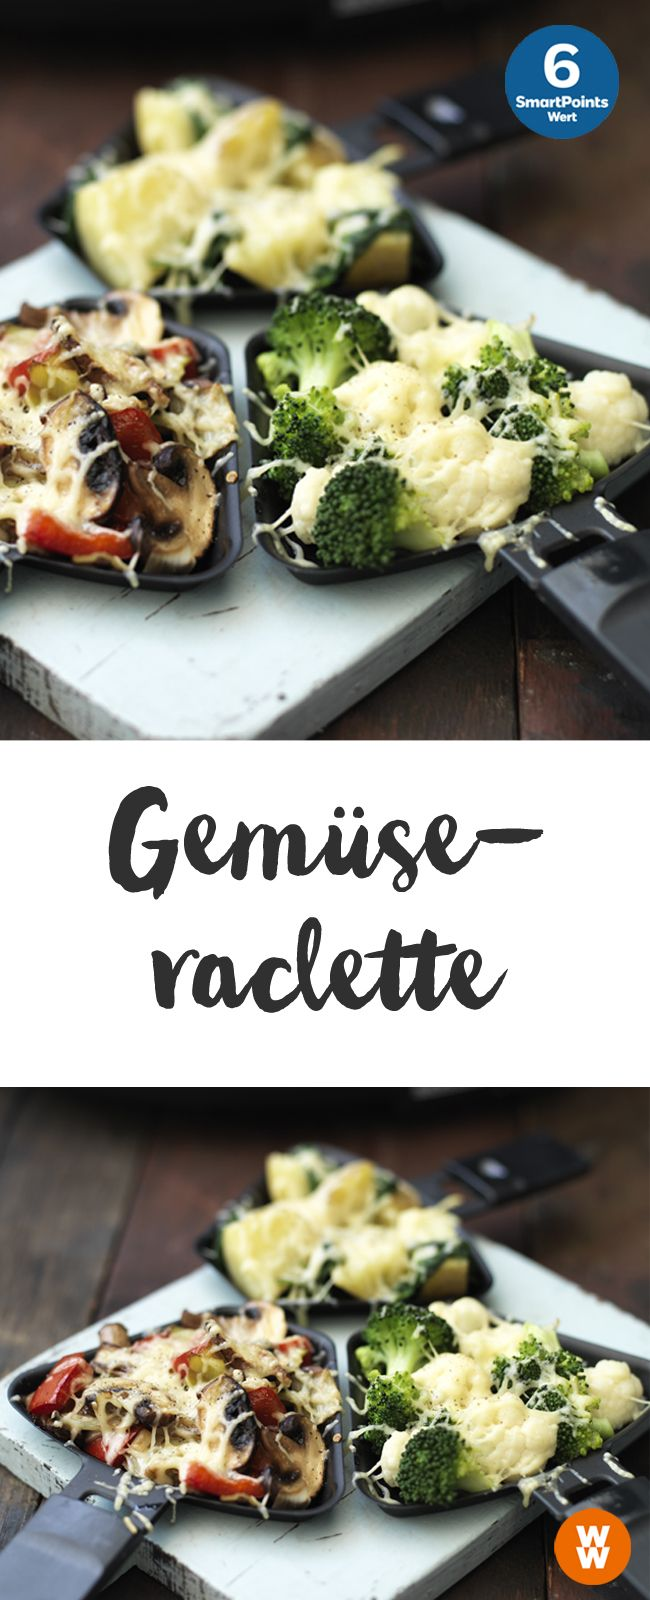 Leckeres Gemüse-Raclette, vegetarisch, 6 SmartPoints pro Portion | Weight Watchers